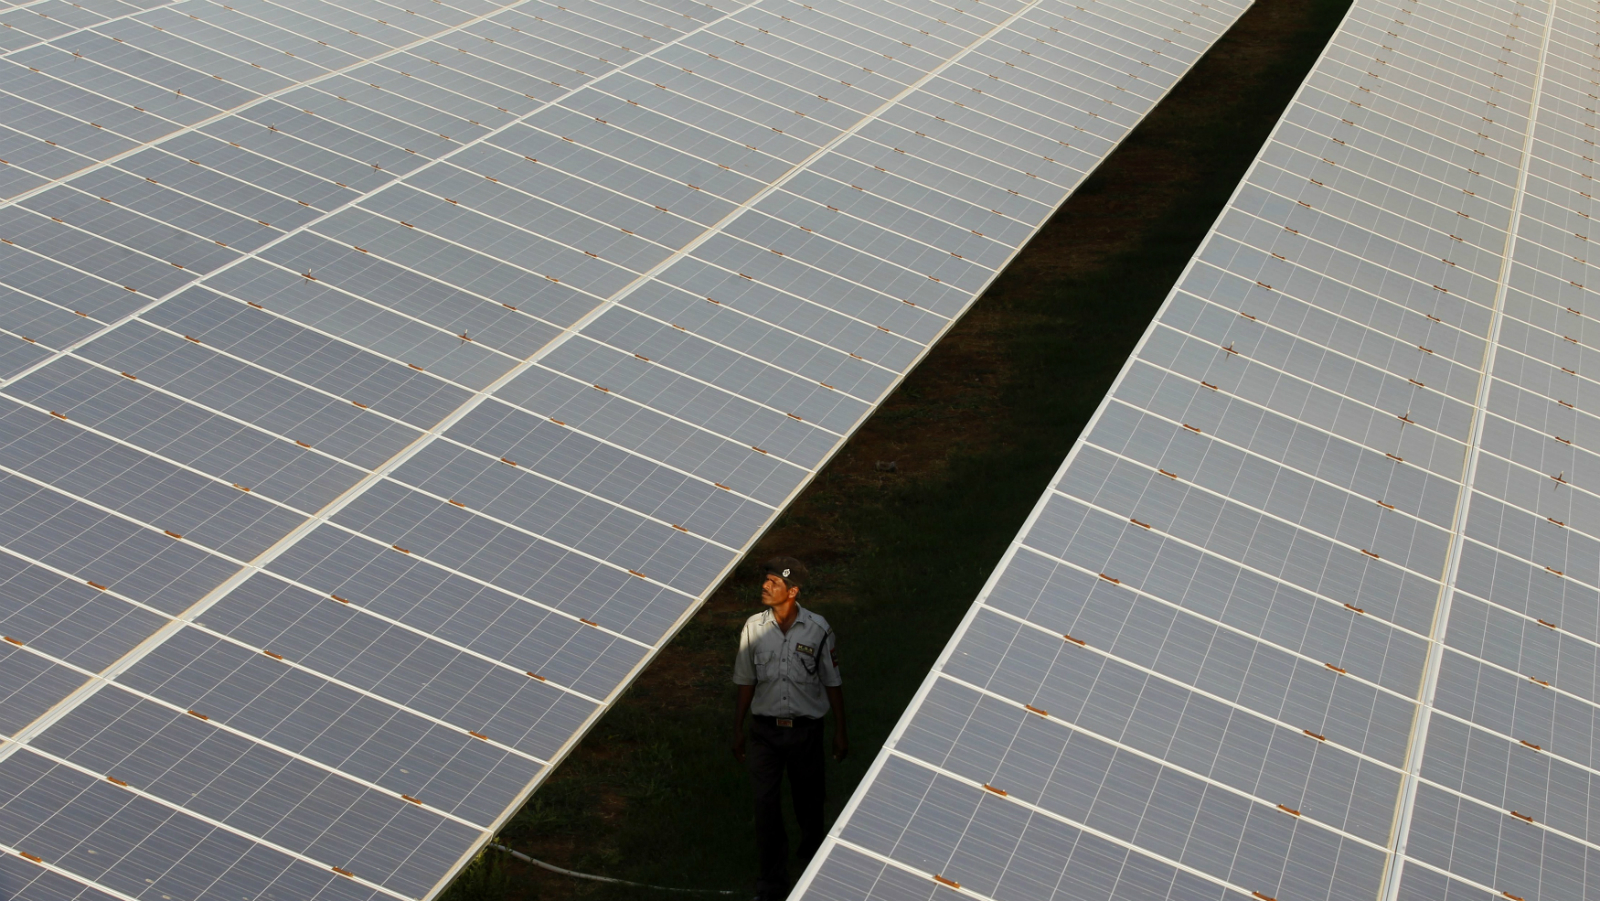 A private security guard walks between rows of photovoltaic solar panels inside a solar power plant at Raisan village near Gandhinagar, in the western Indian state of Gujarat, February 11, 2014. India said on Tuesday it was investigating U.S. policies supporting solar panel makers, the latest move in an escalating row over renewable energy that has worsened already strained ties between the two countries.